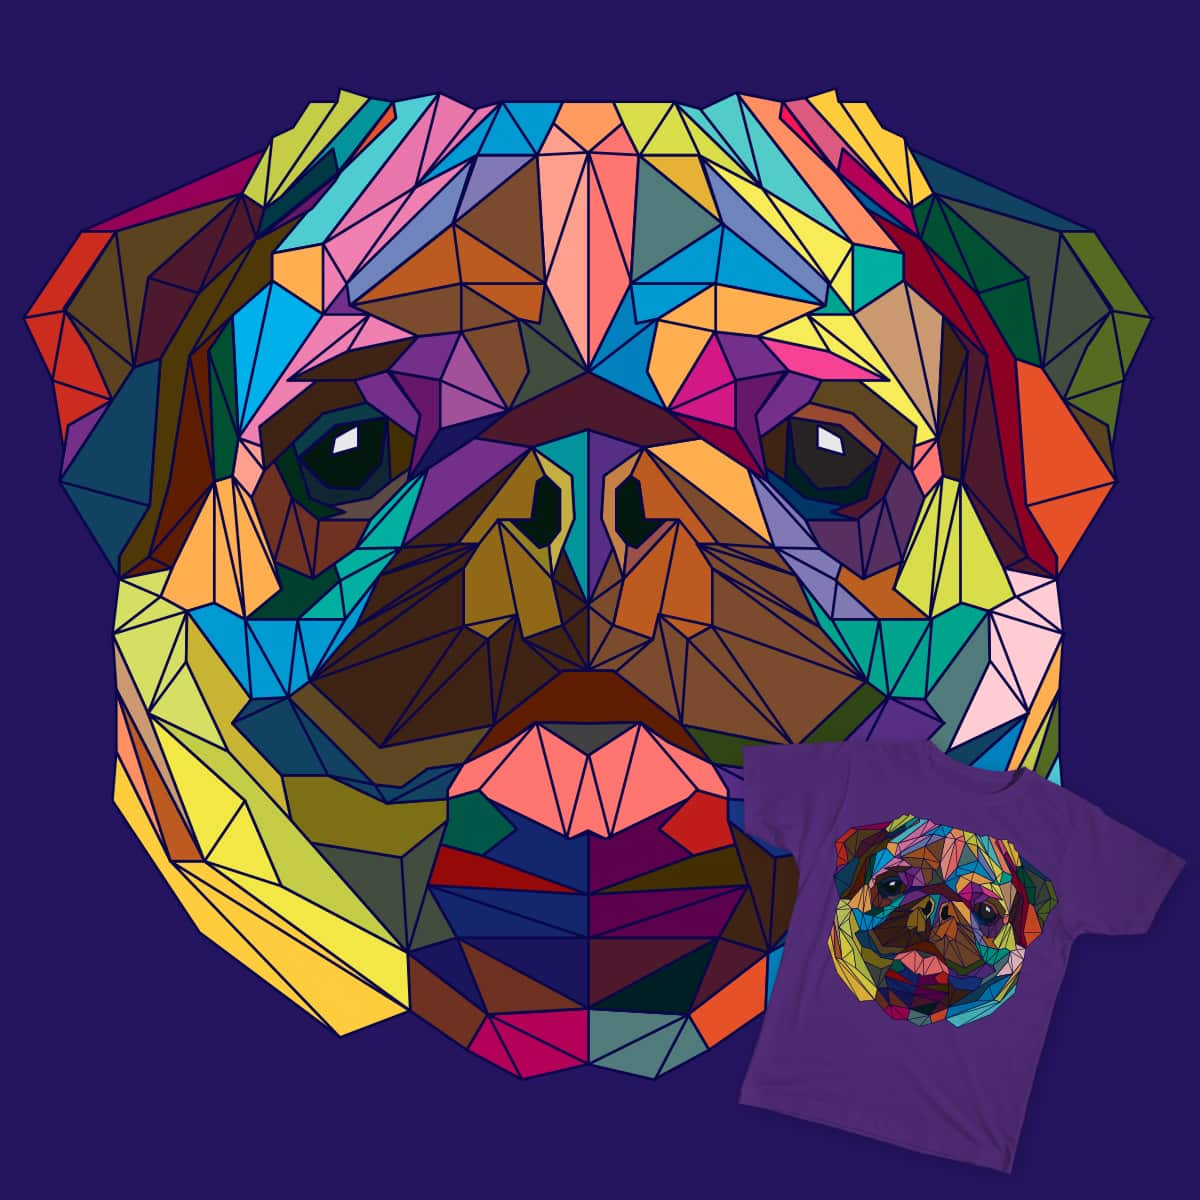 fragile pug by sknny on Threadless